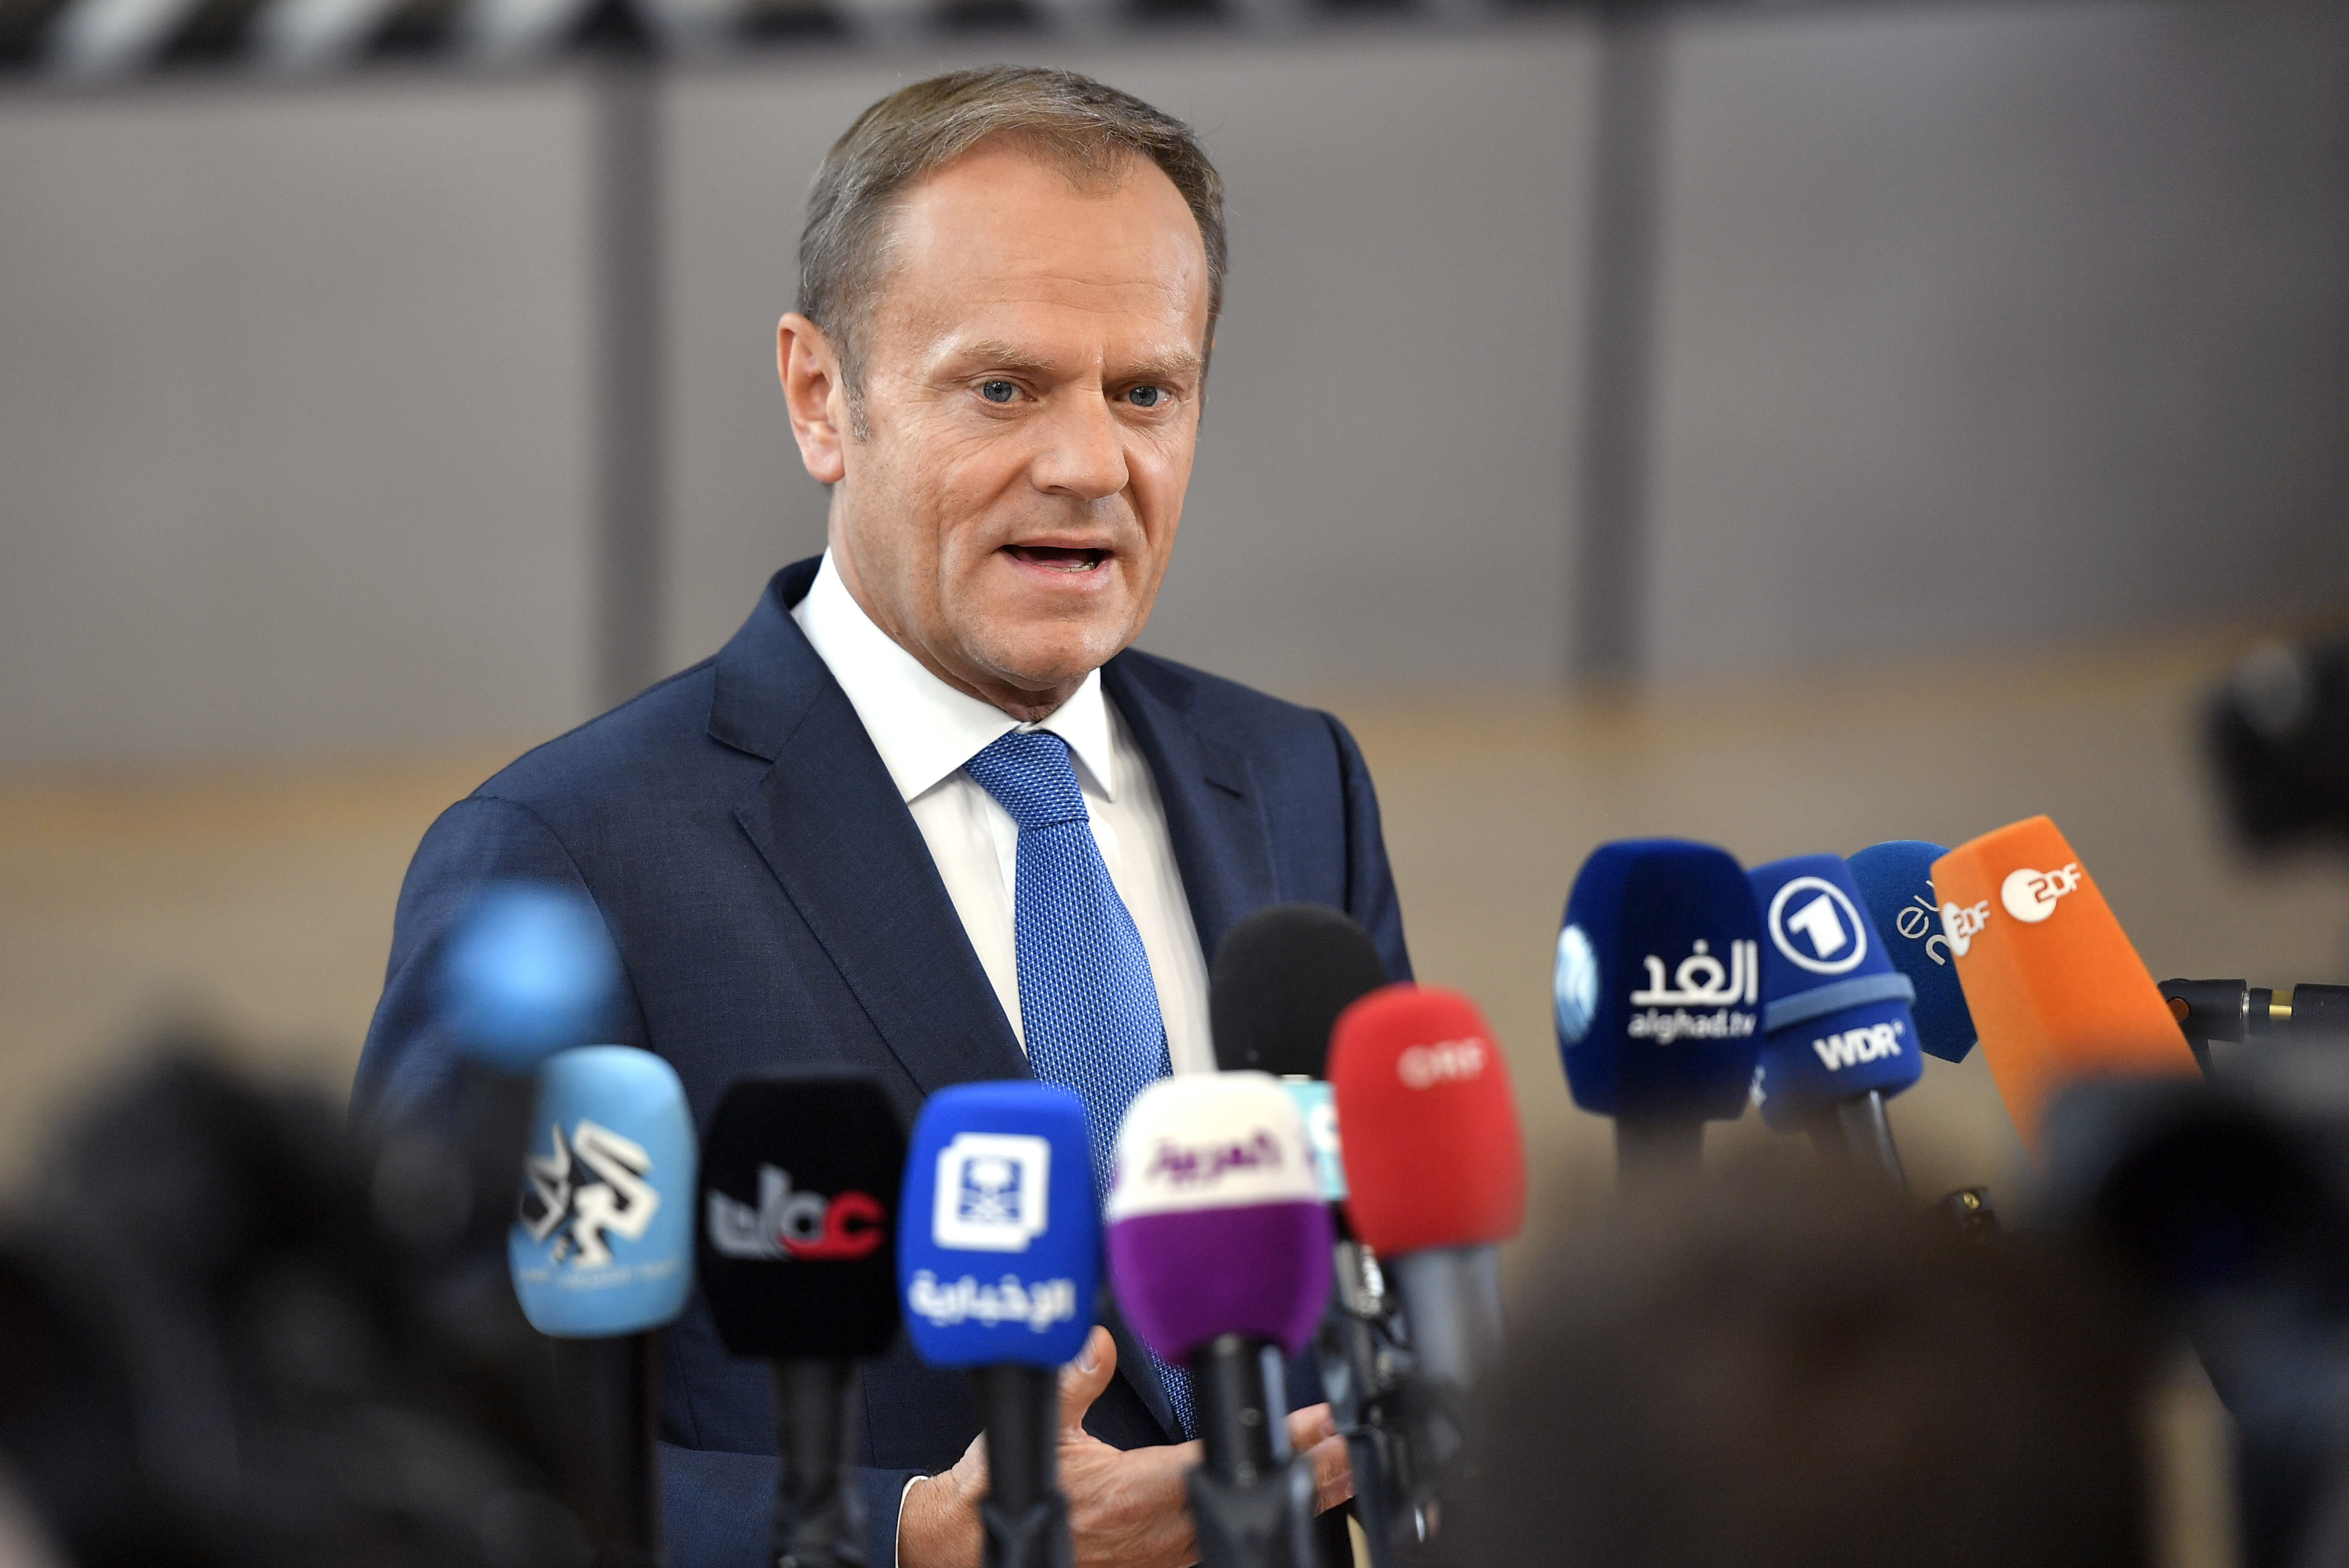 European Council President Donald Tusk speaks with the media as he arrives for an EU summit at the Europa building in Brussels, Belgium, April 29, 2017.